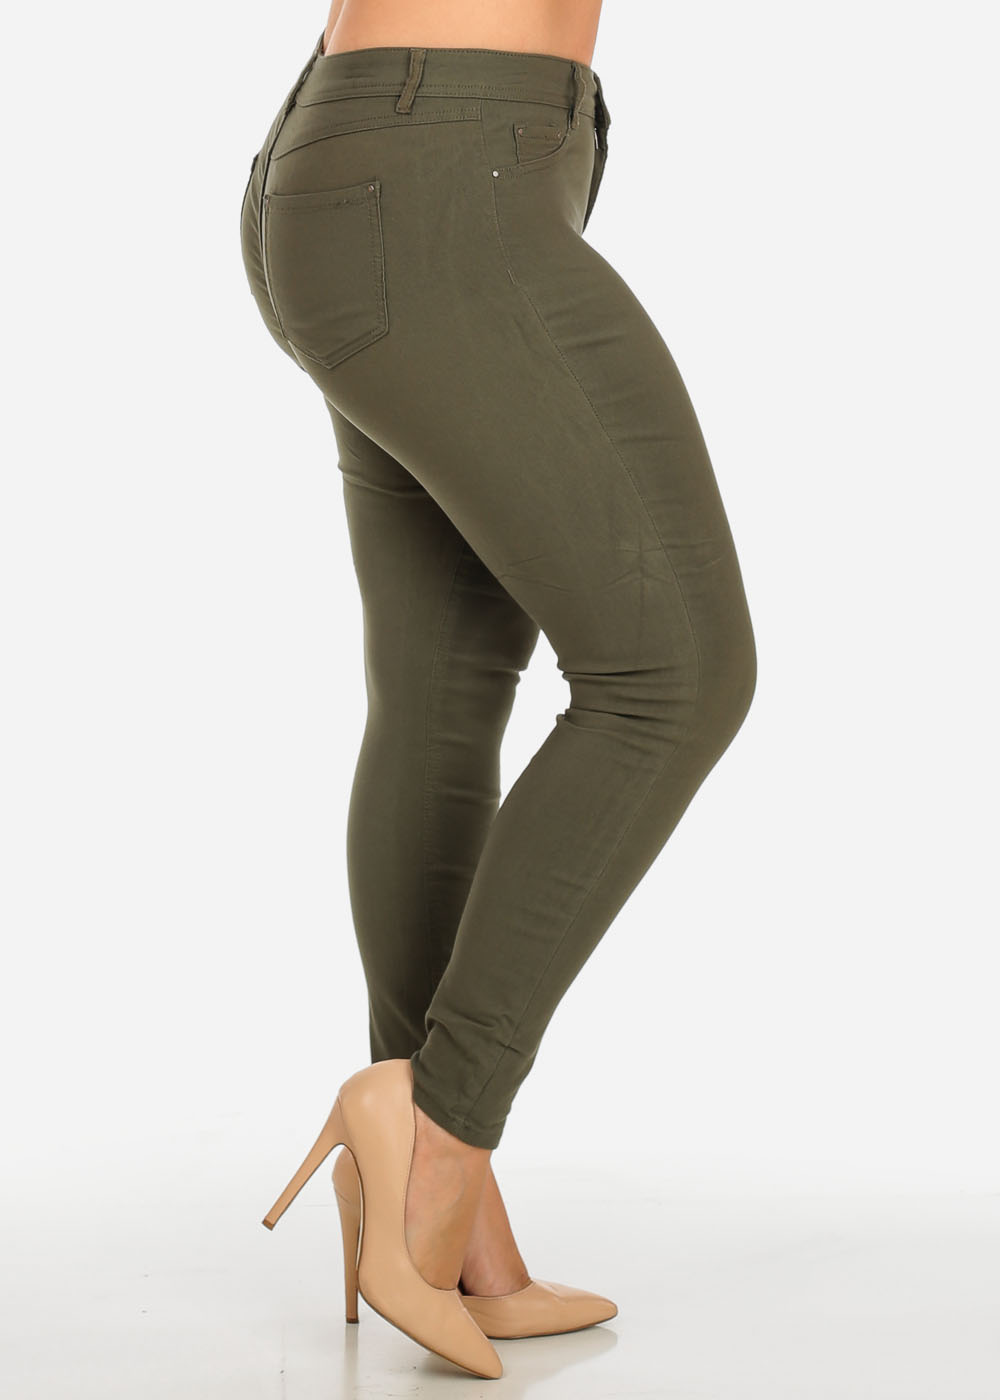 Womens Juniors Stylish Mid Waist Solid Olive One Button Stretchy Skinny Pants 30729J